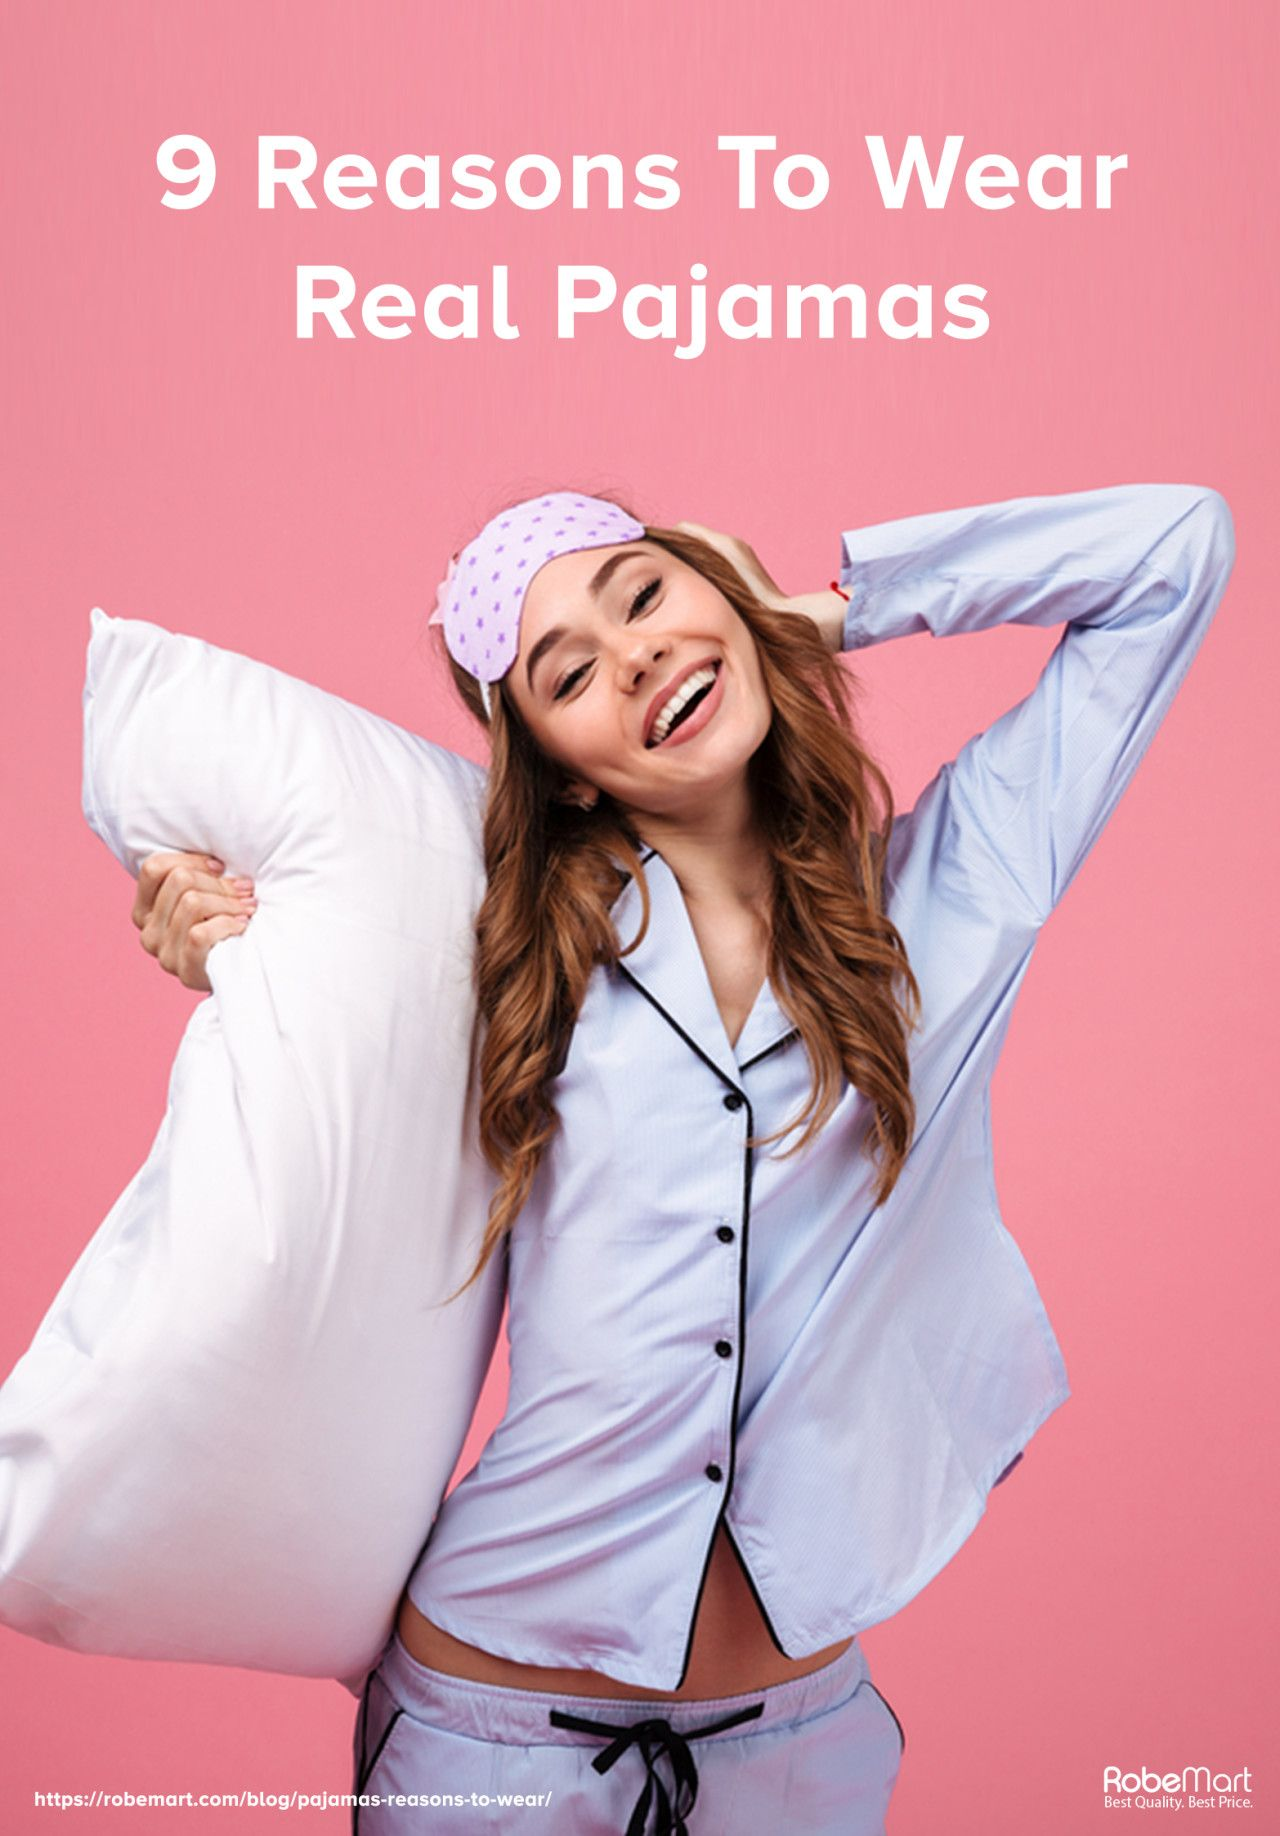 This Shirt Because I Was I Wear It As Pjs All The Time: 9 Reasons To Wear Real Pajamas